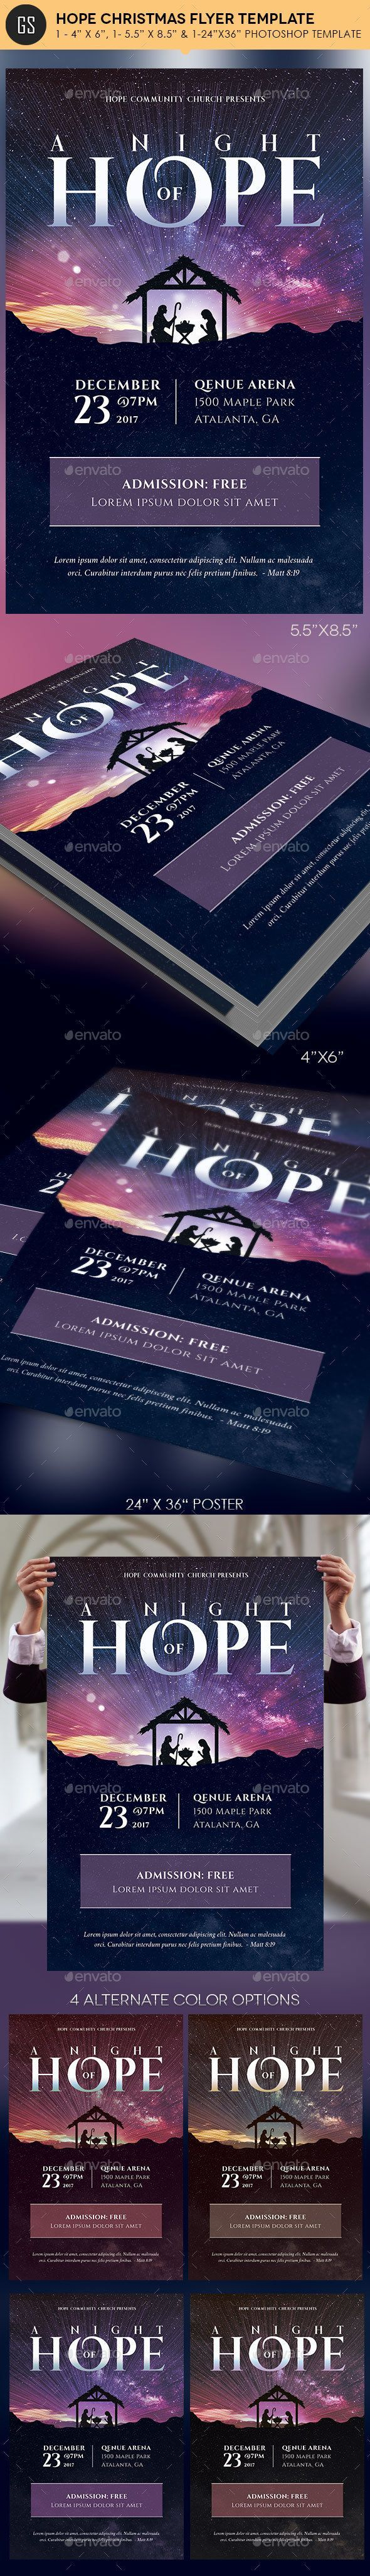 Hope Christmas Flyer Poster Template - Church Flyers